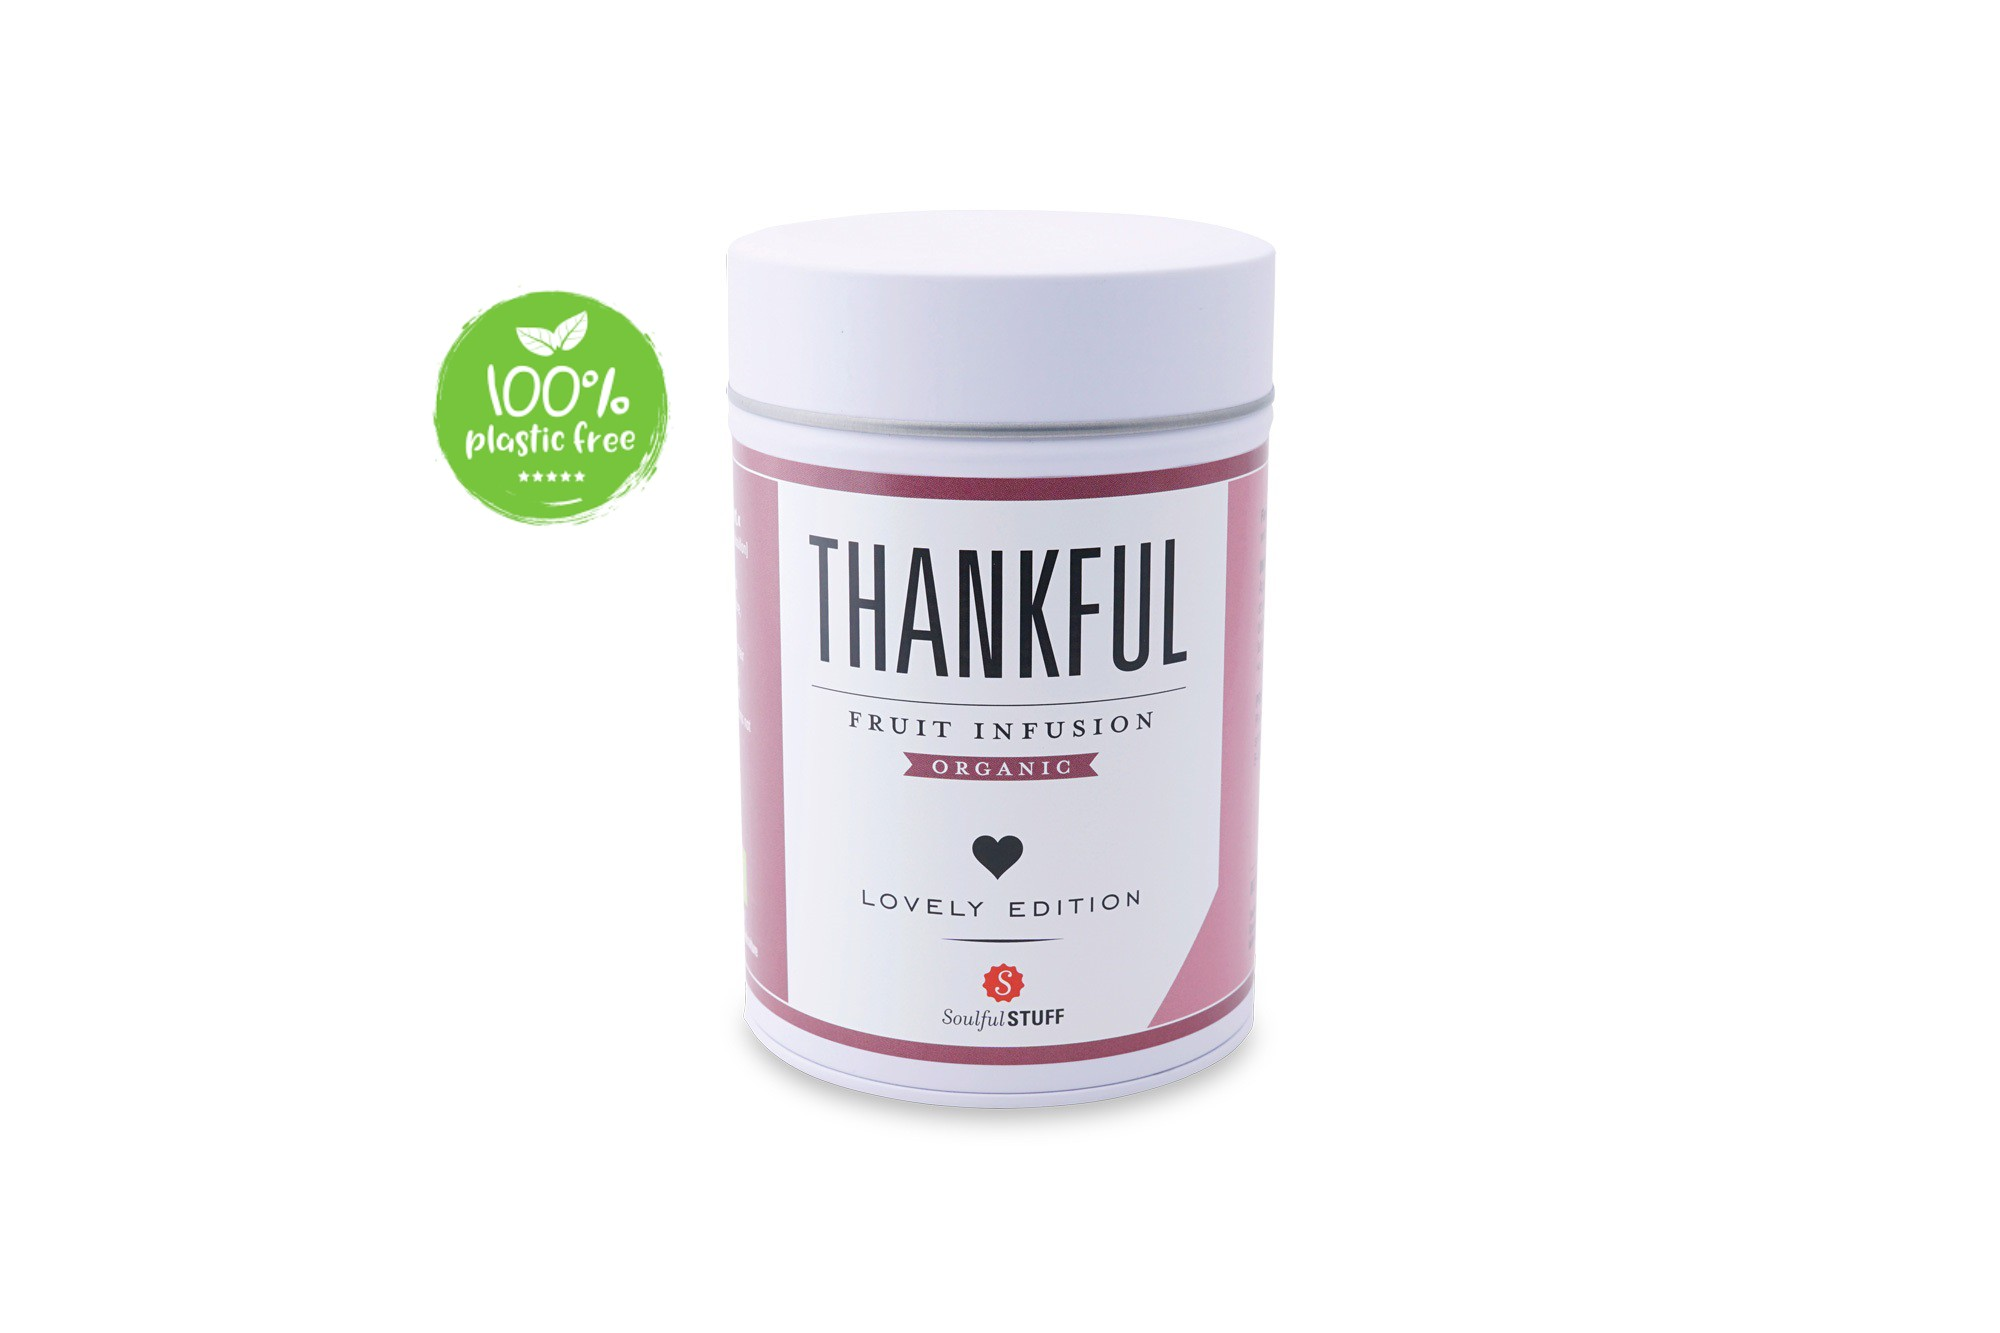 Thankful Fruit Infusion Organic blik 130gr. Intertee